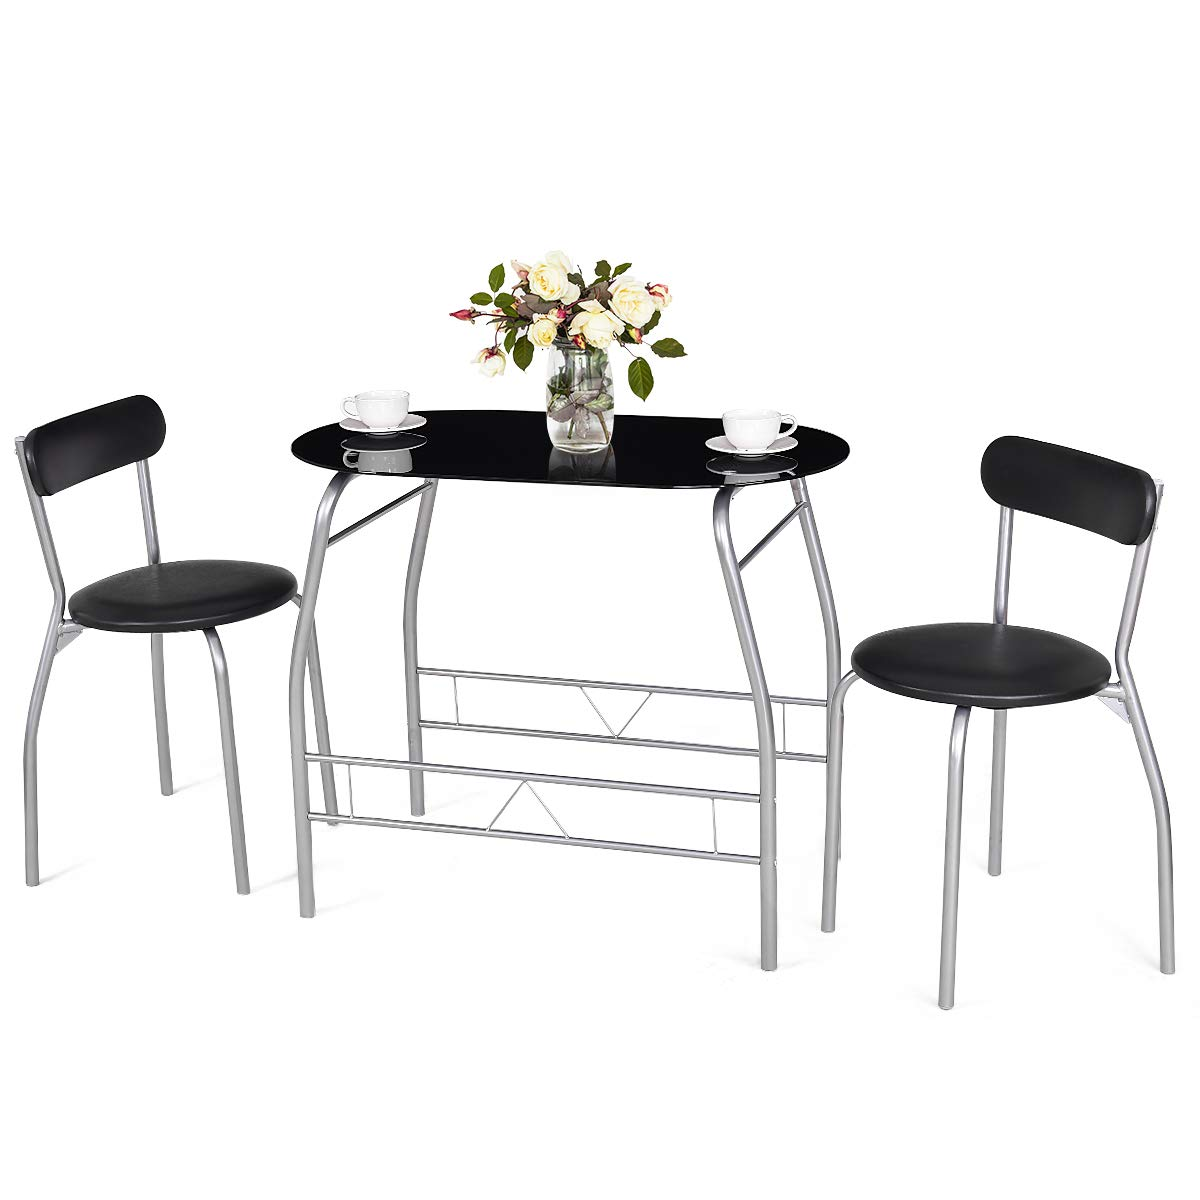 Tangkula 3 Piece Dining Set Modern Metal Frame Glass Top Table And 2 Chairs Set Home Kitchen Bistro Pub Breakfast Furniture Black And Silver